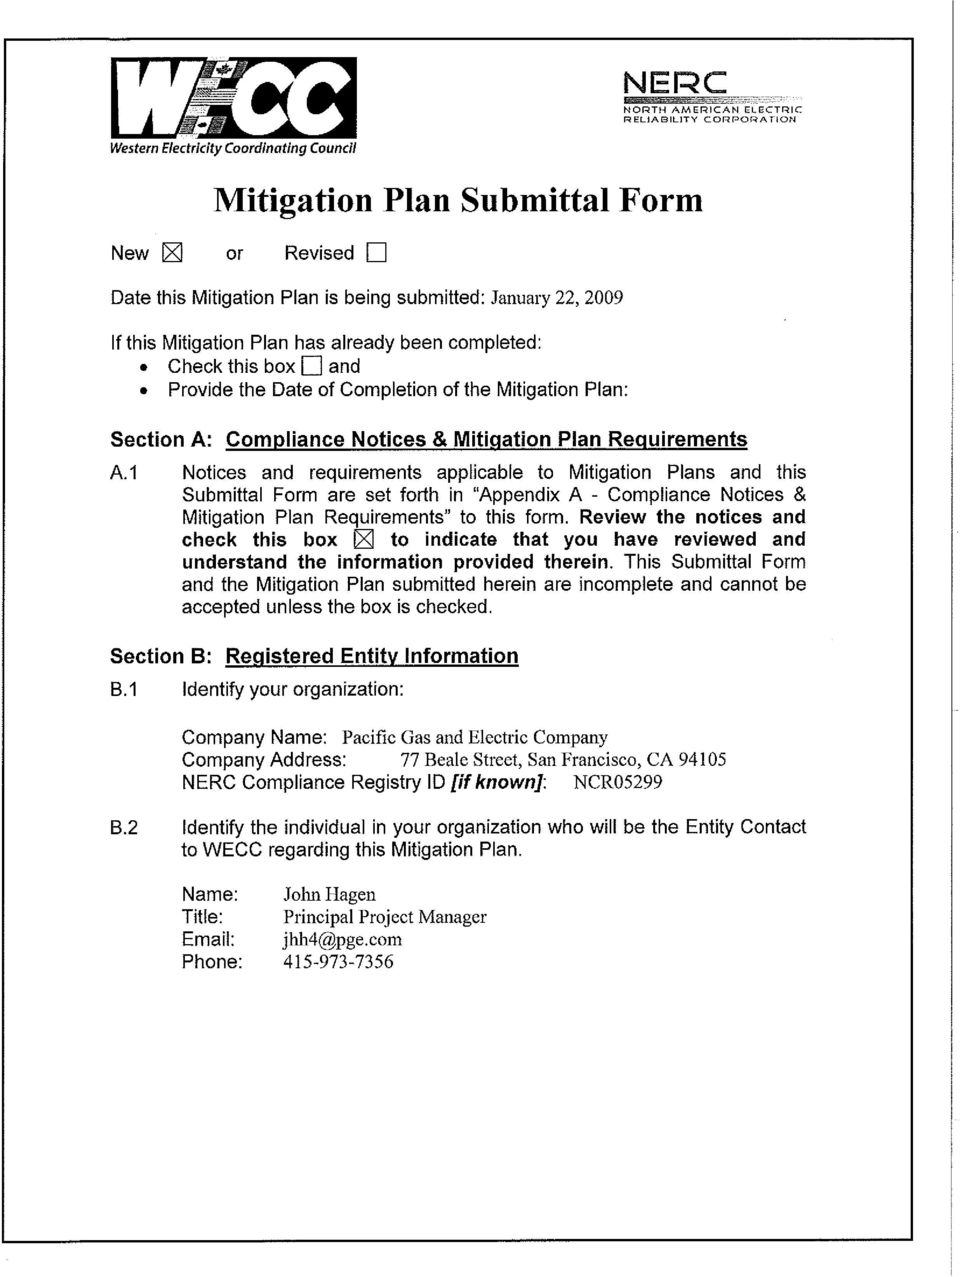 "1 Notices and requirements applicable to Mitigation Plans and this Submittal Form are set forth in ""Appendix A - Compliance Notices & Mitigation Plan Requirements"" to this form."